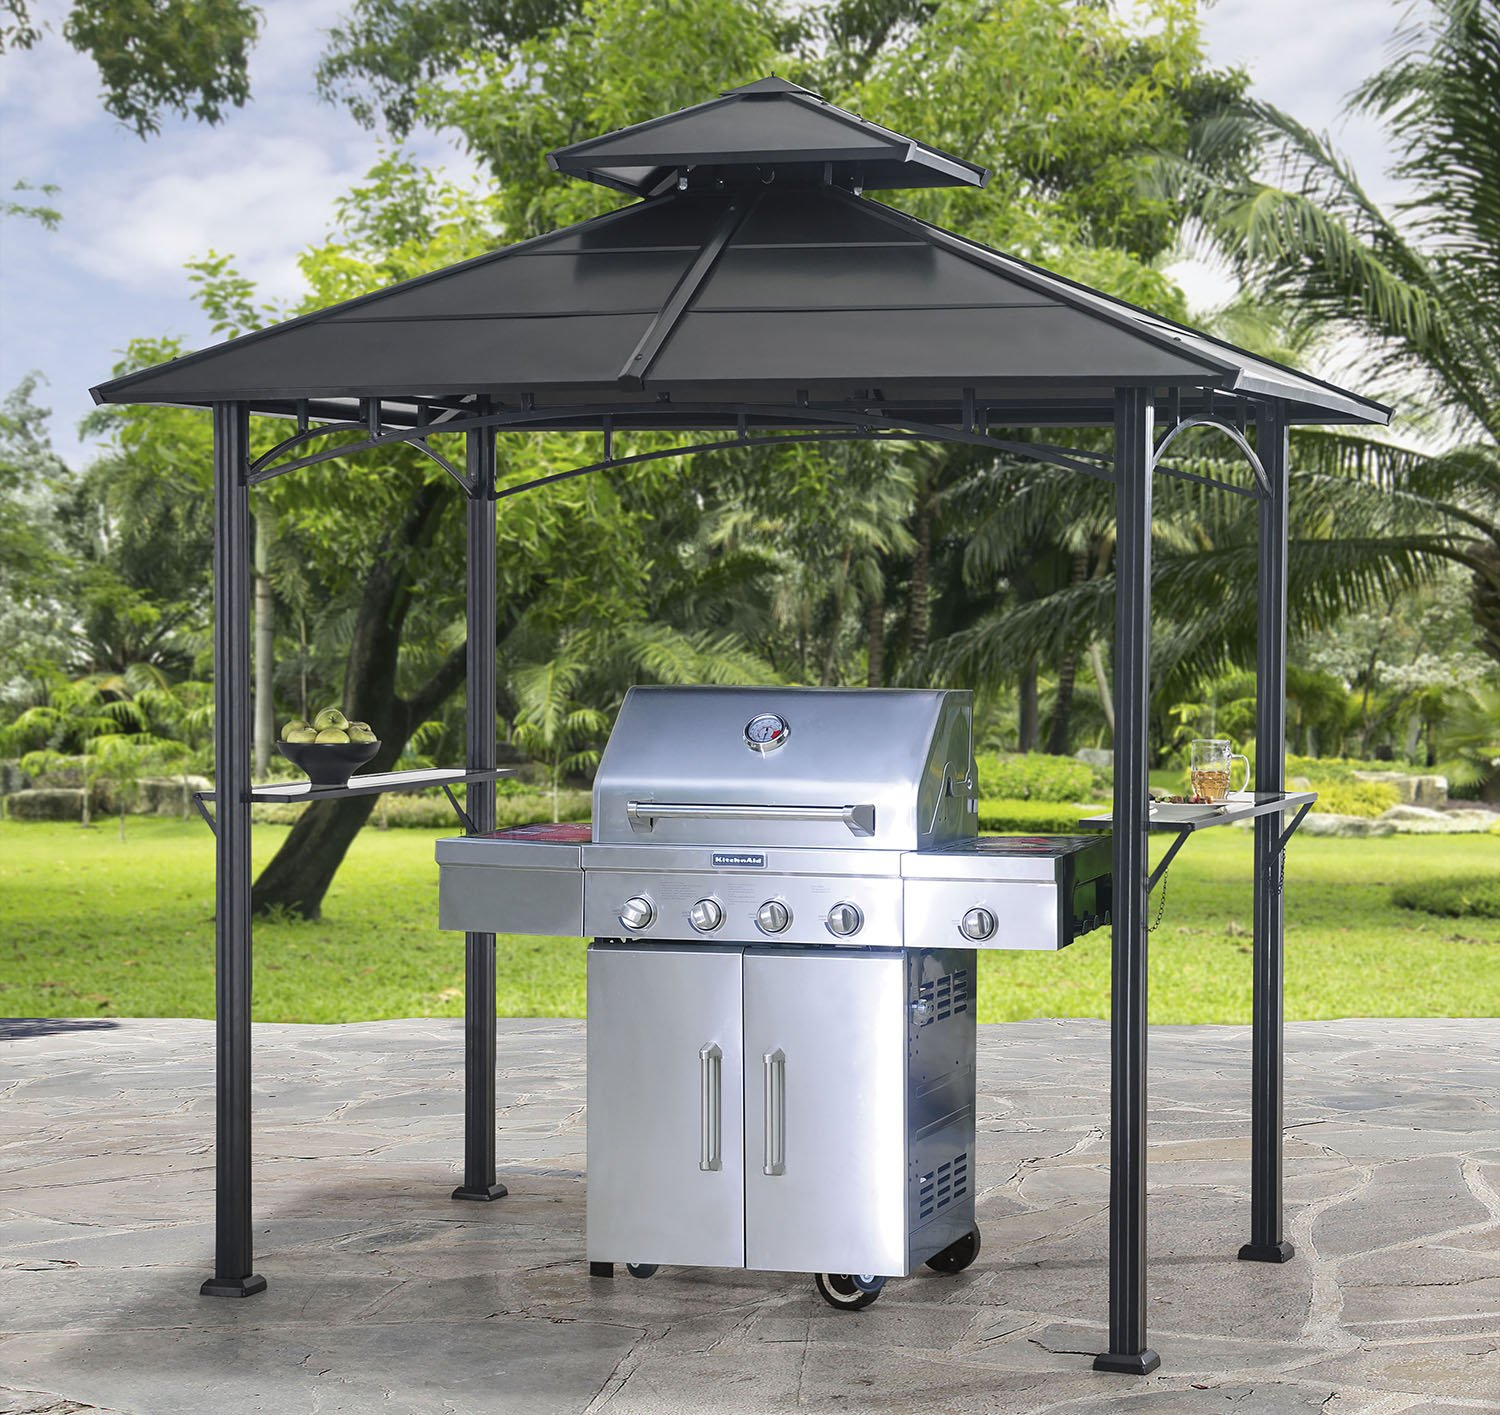 decor awning optimizing home bbq ideas grill www best gazebo emerging